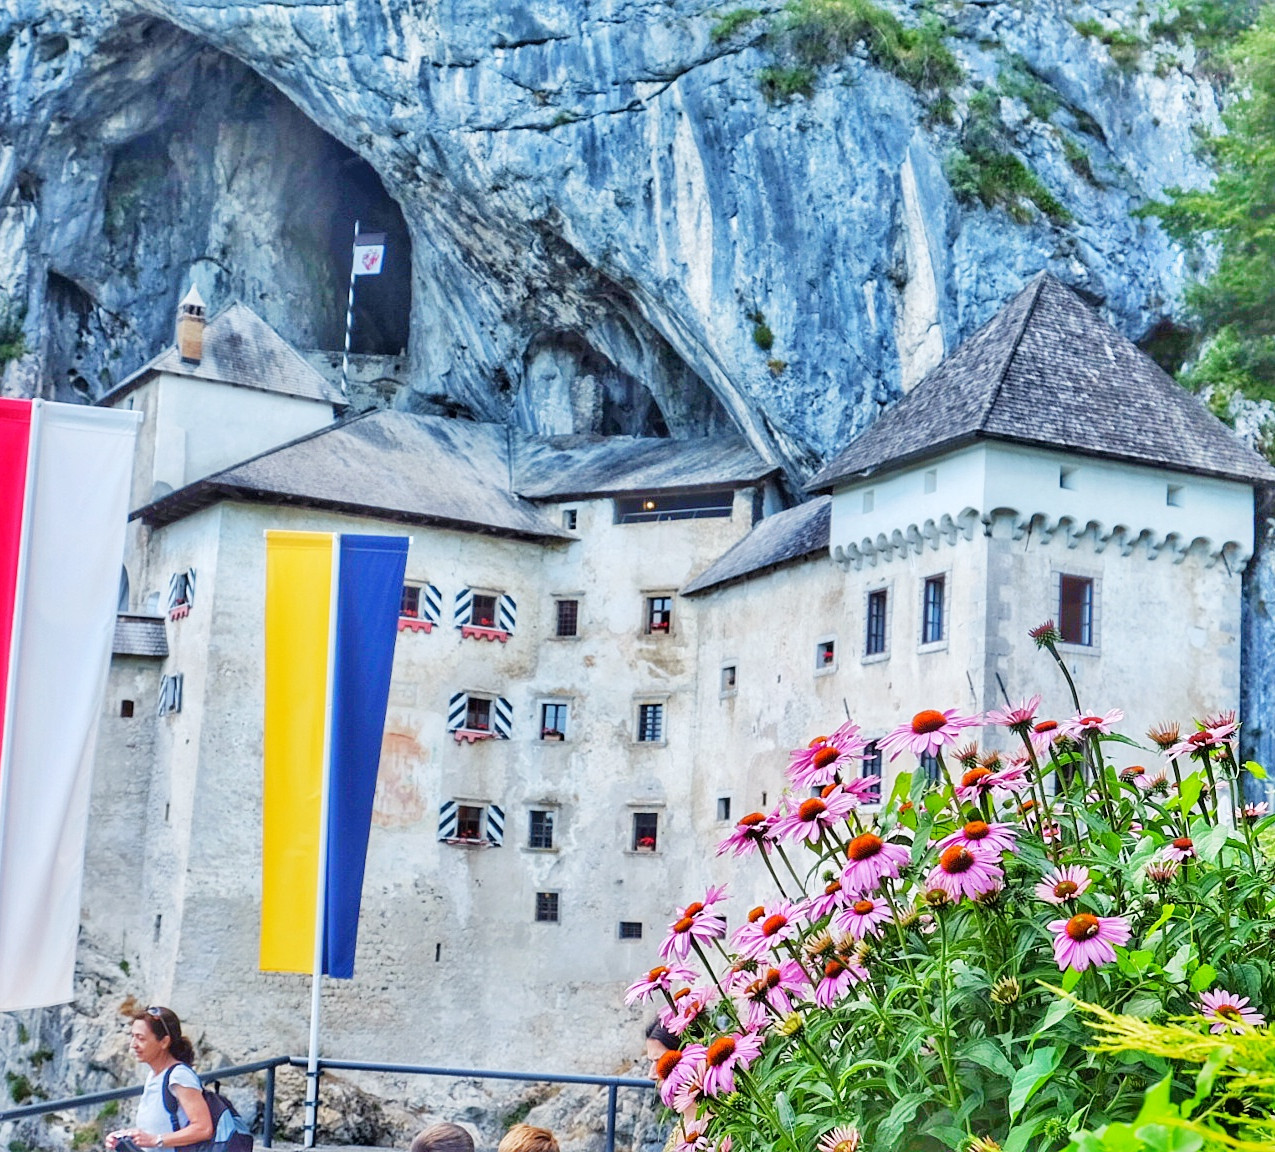 Predjama Castle, Slovenia. Photo by Wanderlustaussies